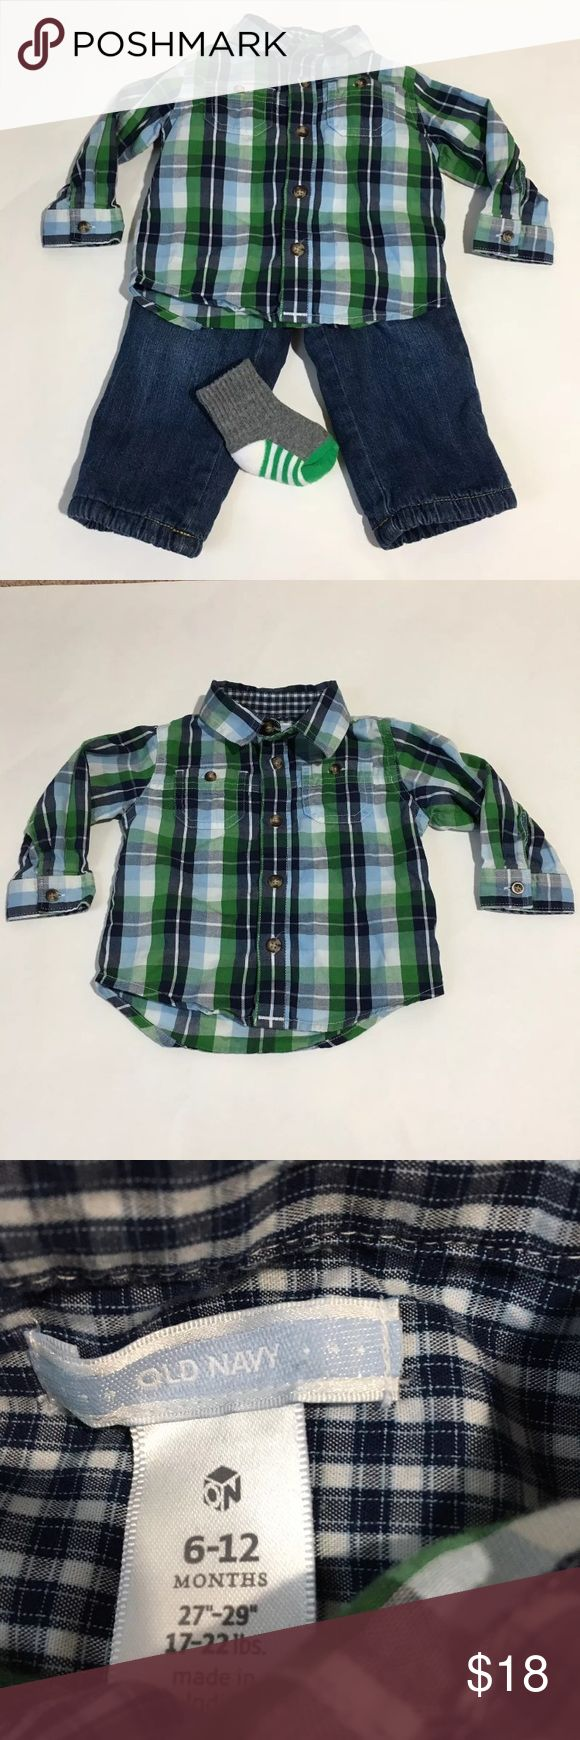 Green Plaid Shirt Fleece Lined Jeans Outfit 6-12m Boys Old Navy green plaid long sleeve button down shirt and fleece lined jeans outfit plus a pair of socks!! Size 6-12 Months. Excellent condition no flaws Old Navy Matching Sets